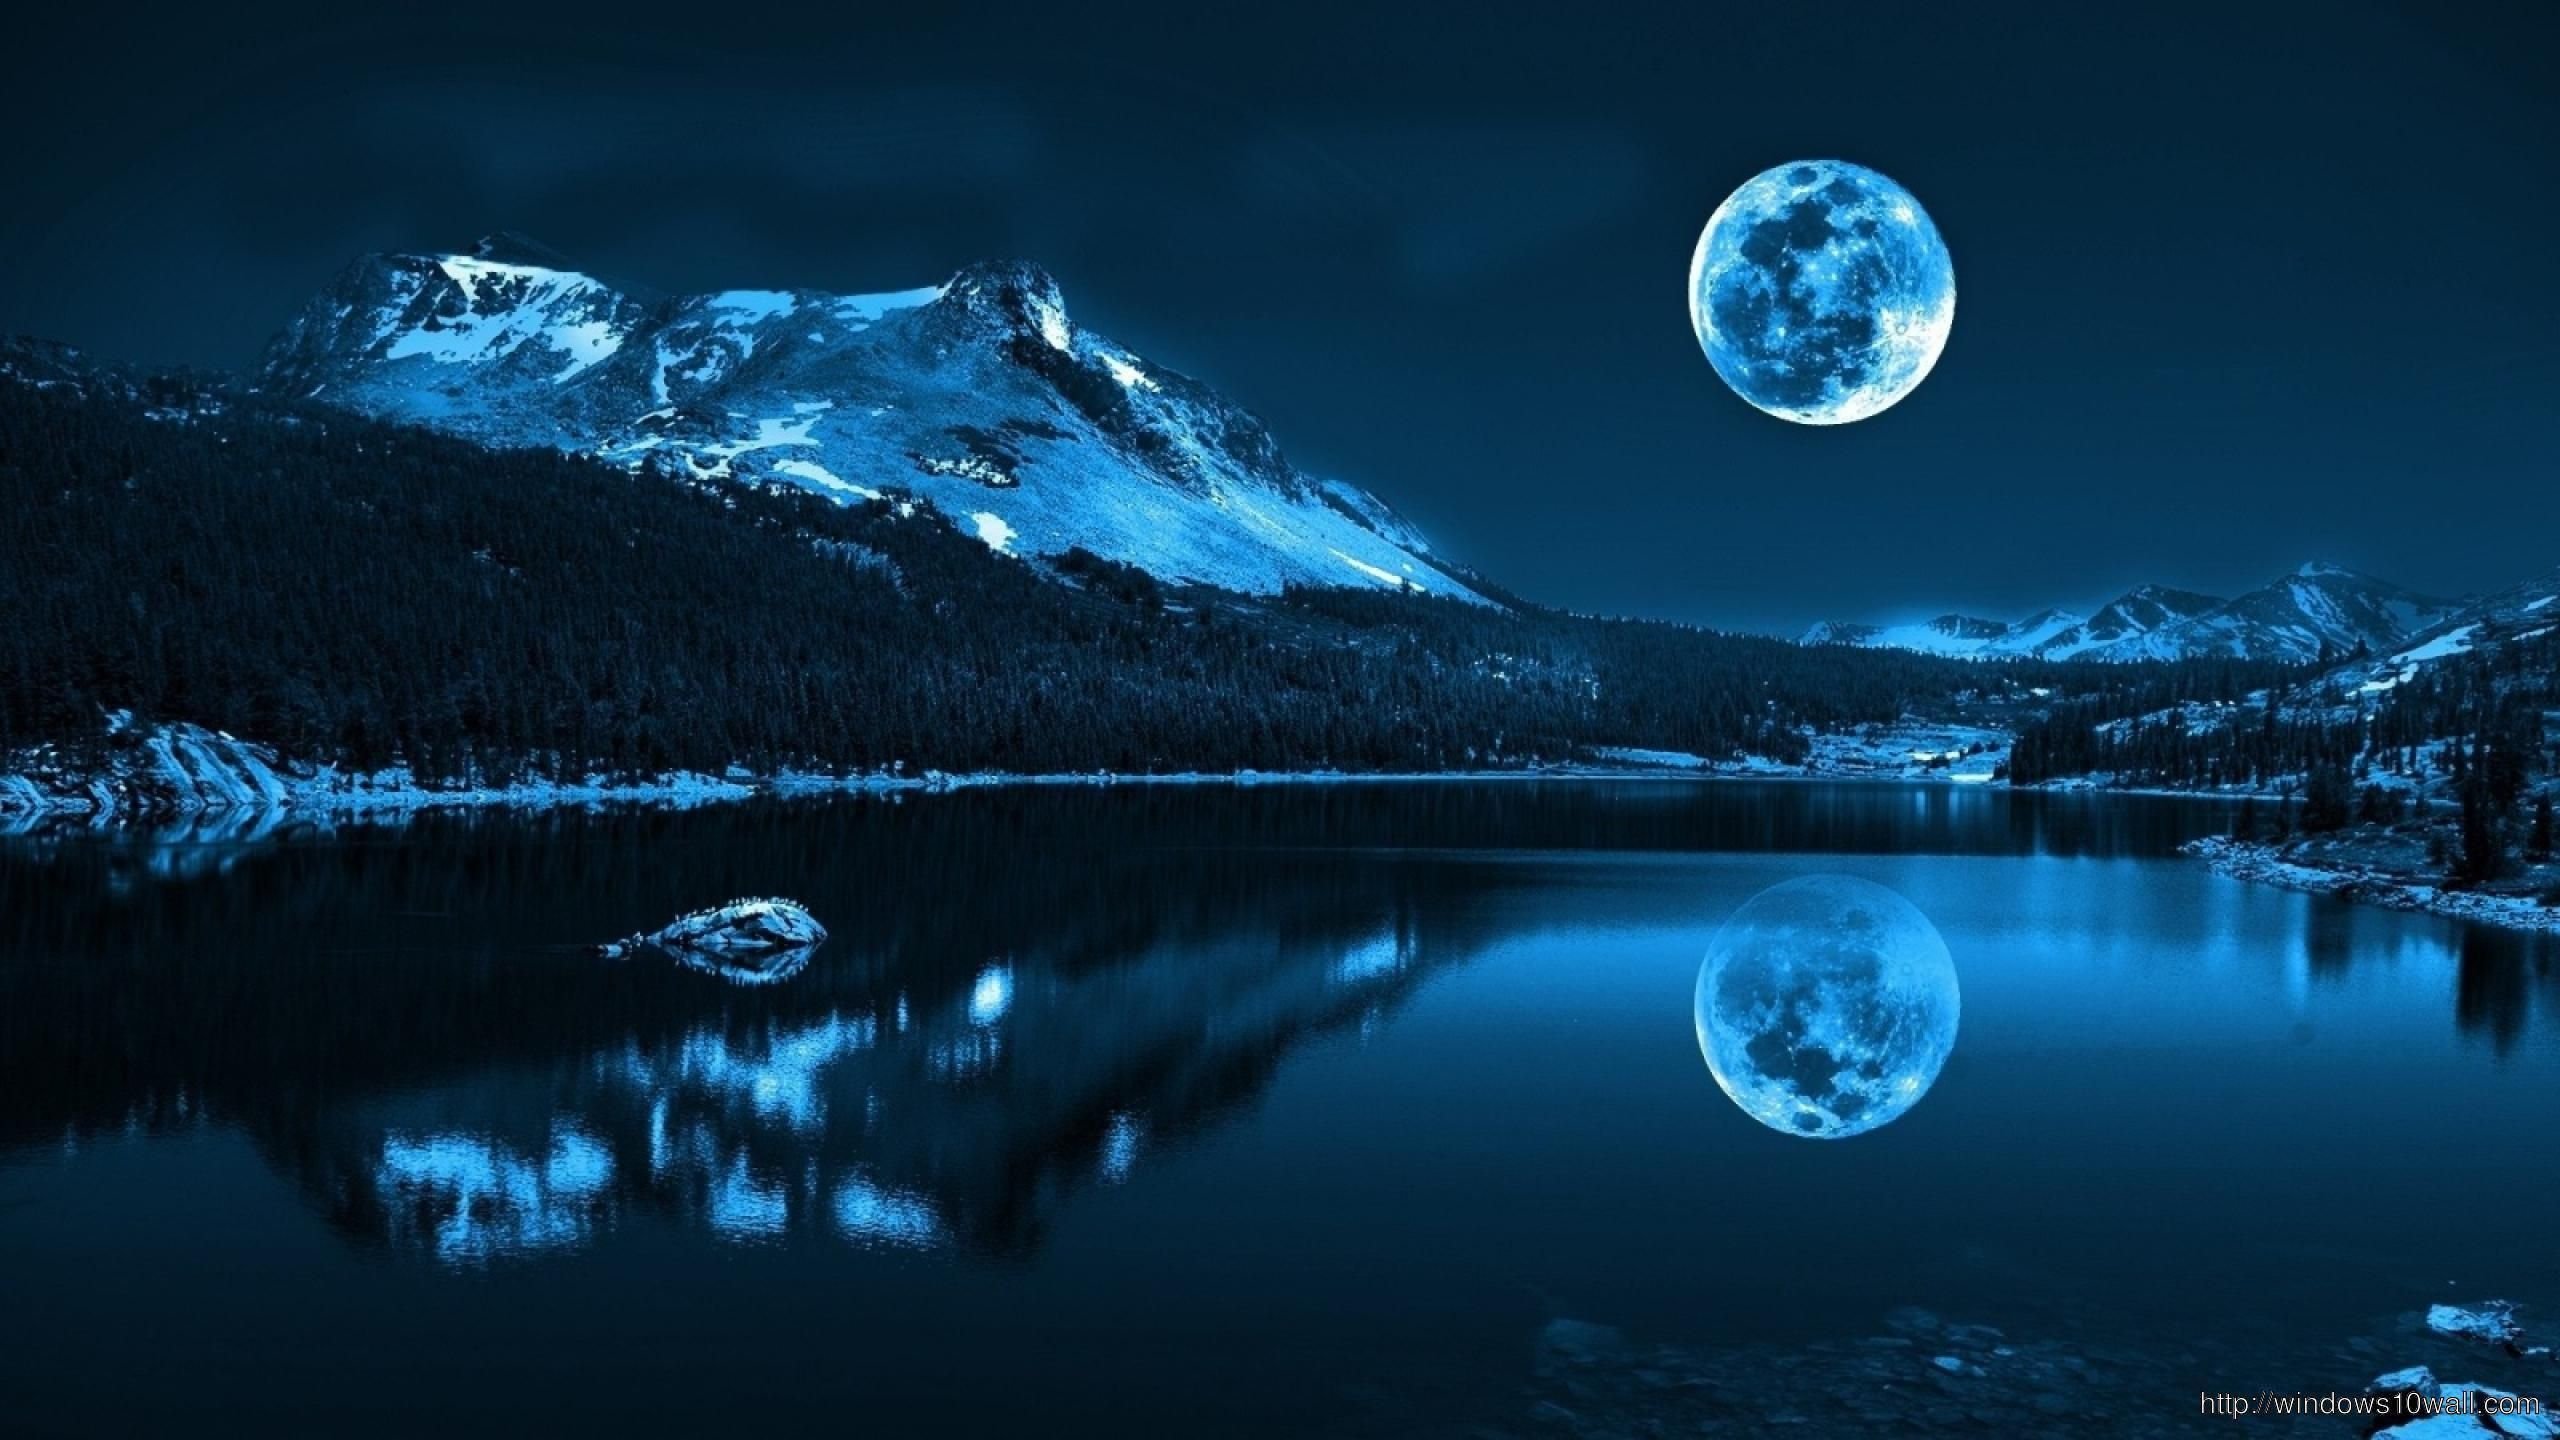 Super Moon Background Wallpaper Windows 10 Wallpapers In